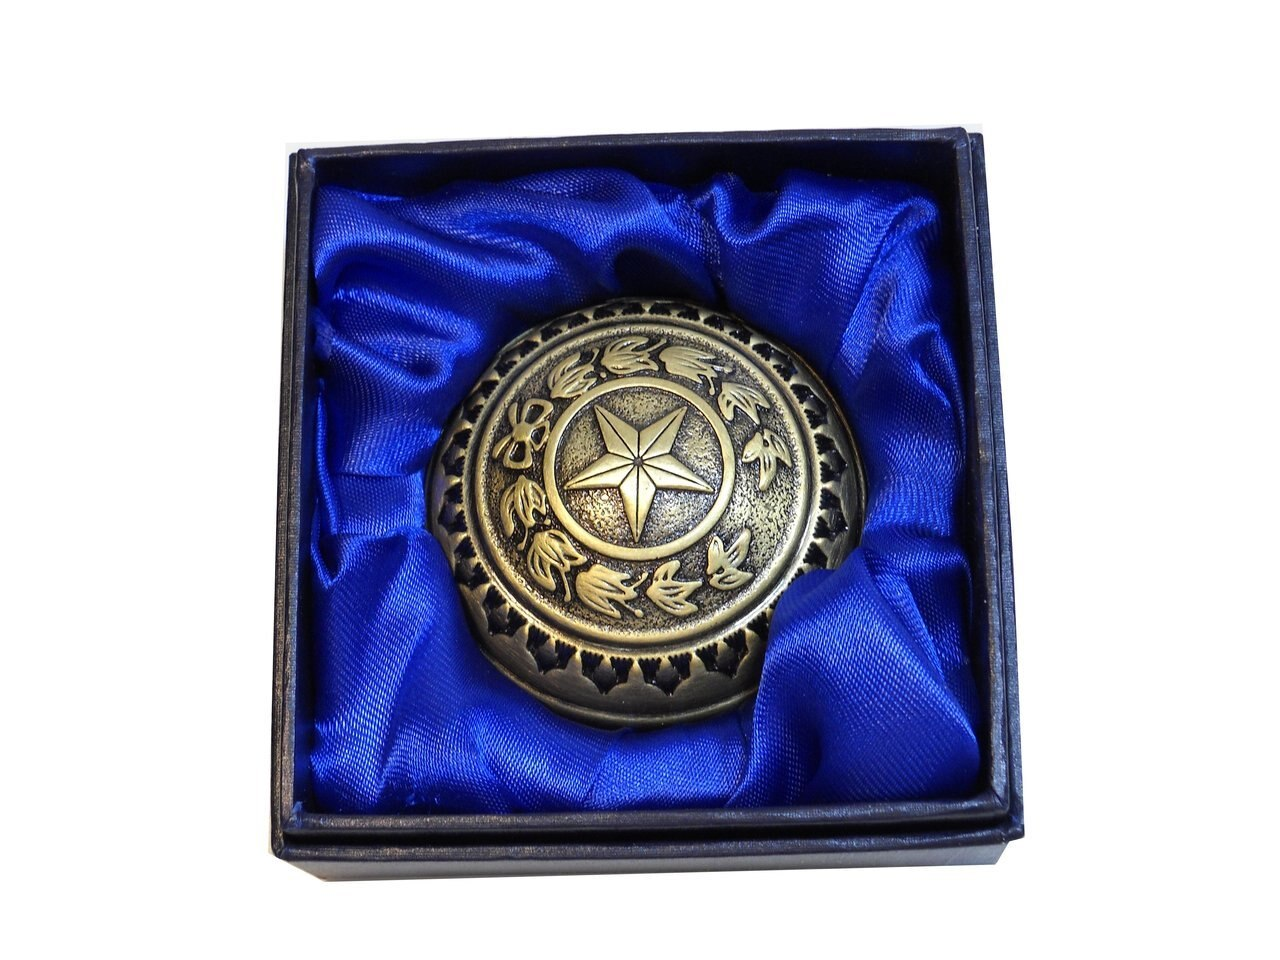 Texas State Seal Paperweight 1